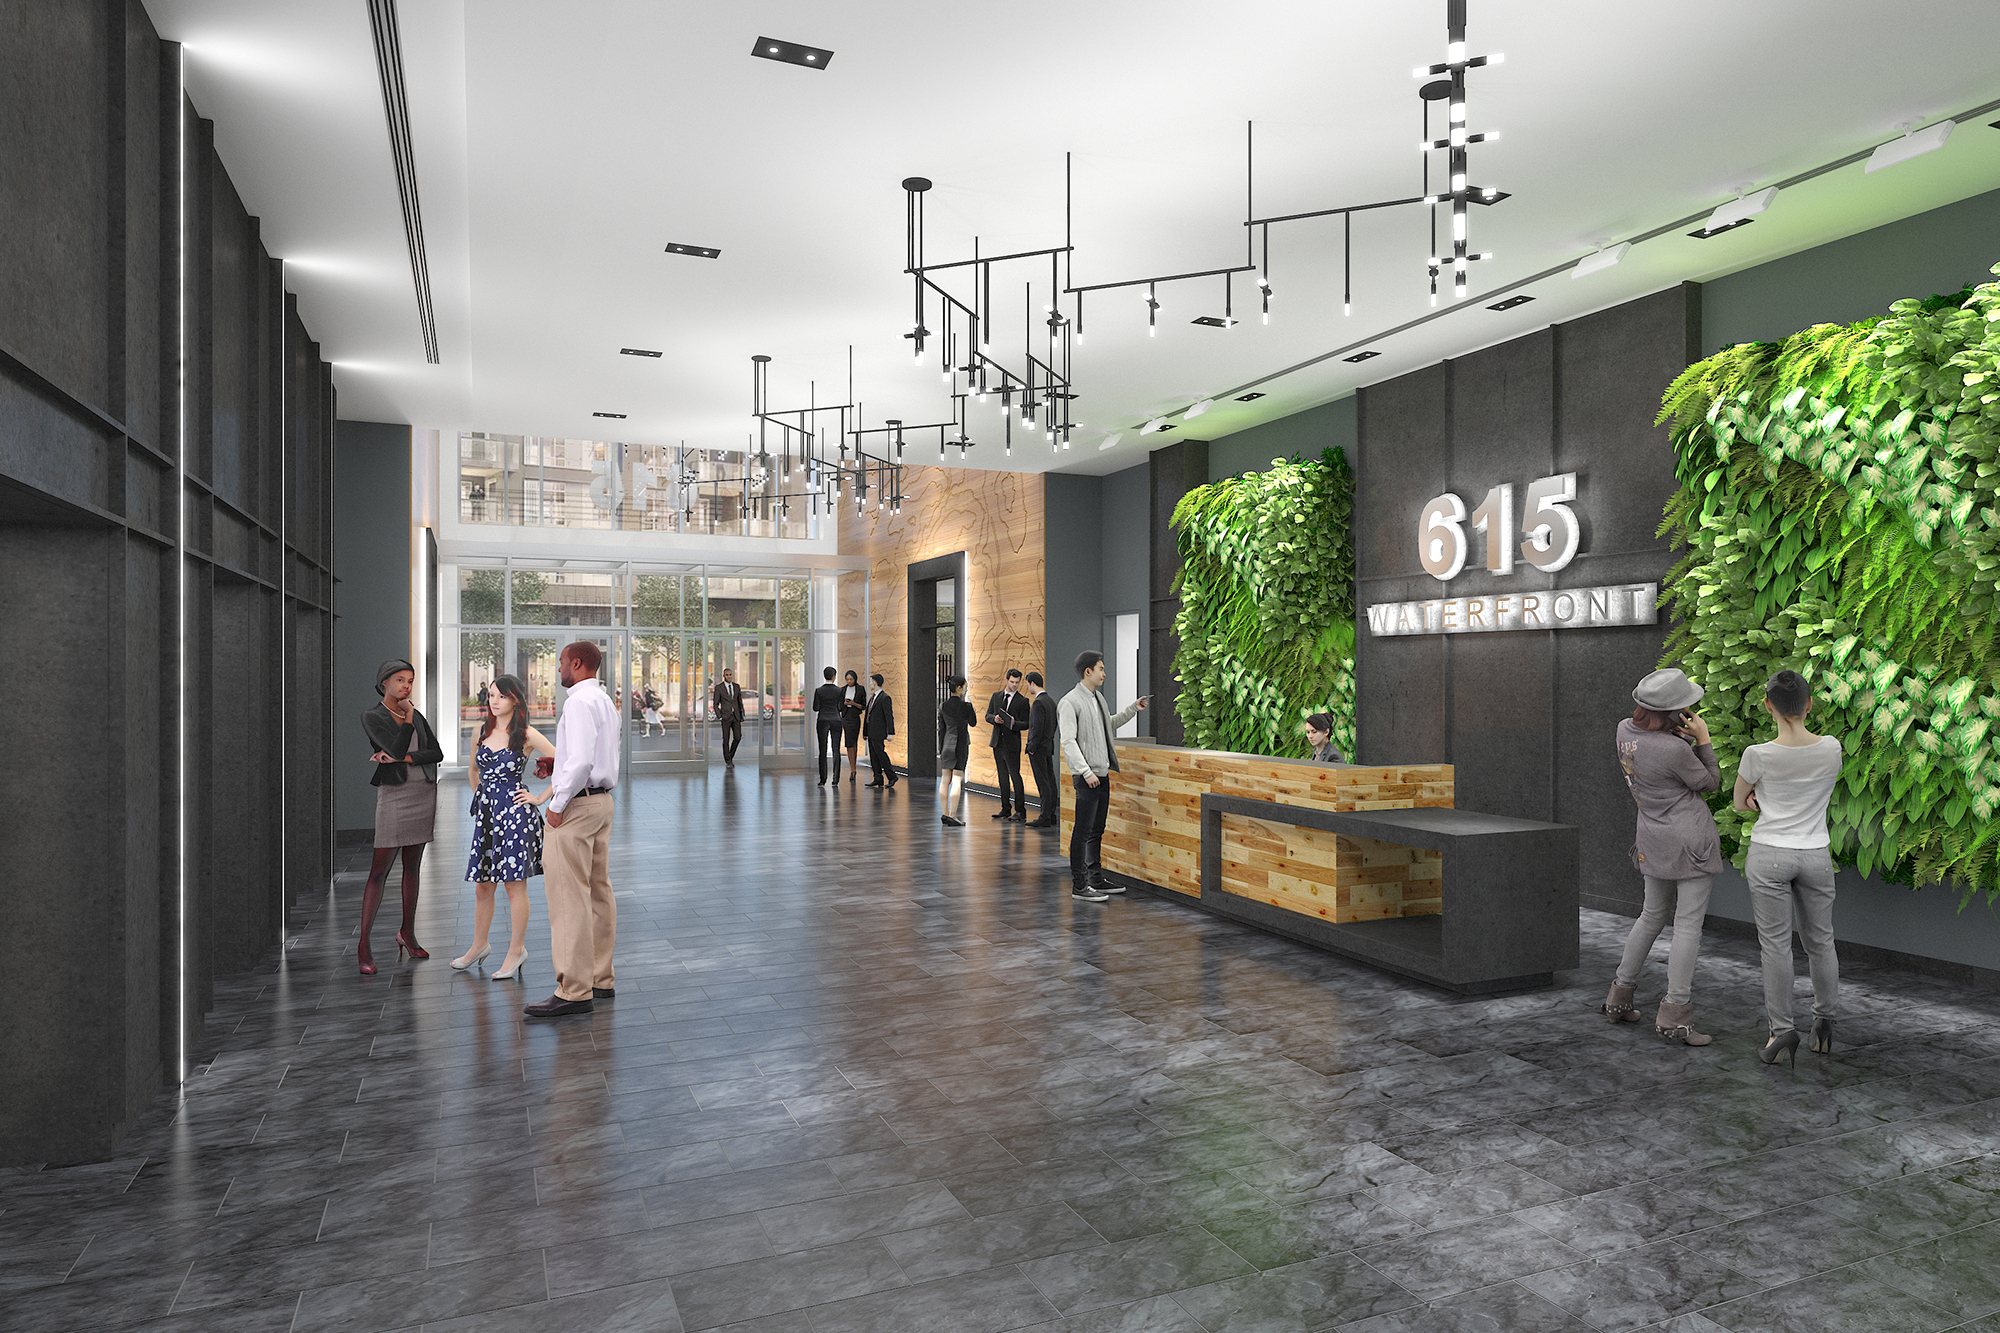 615 Waterfront Lobby